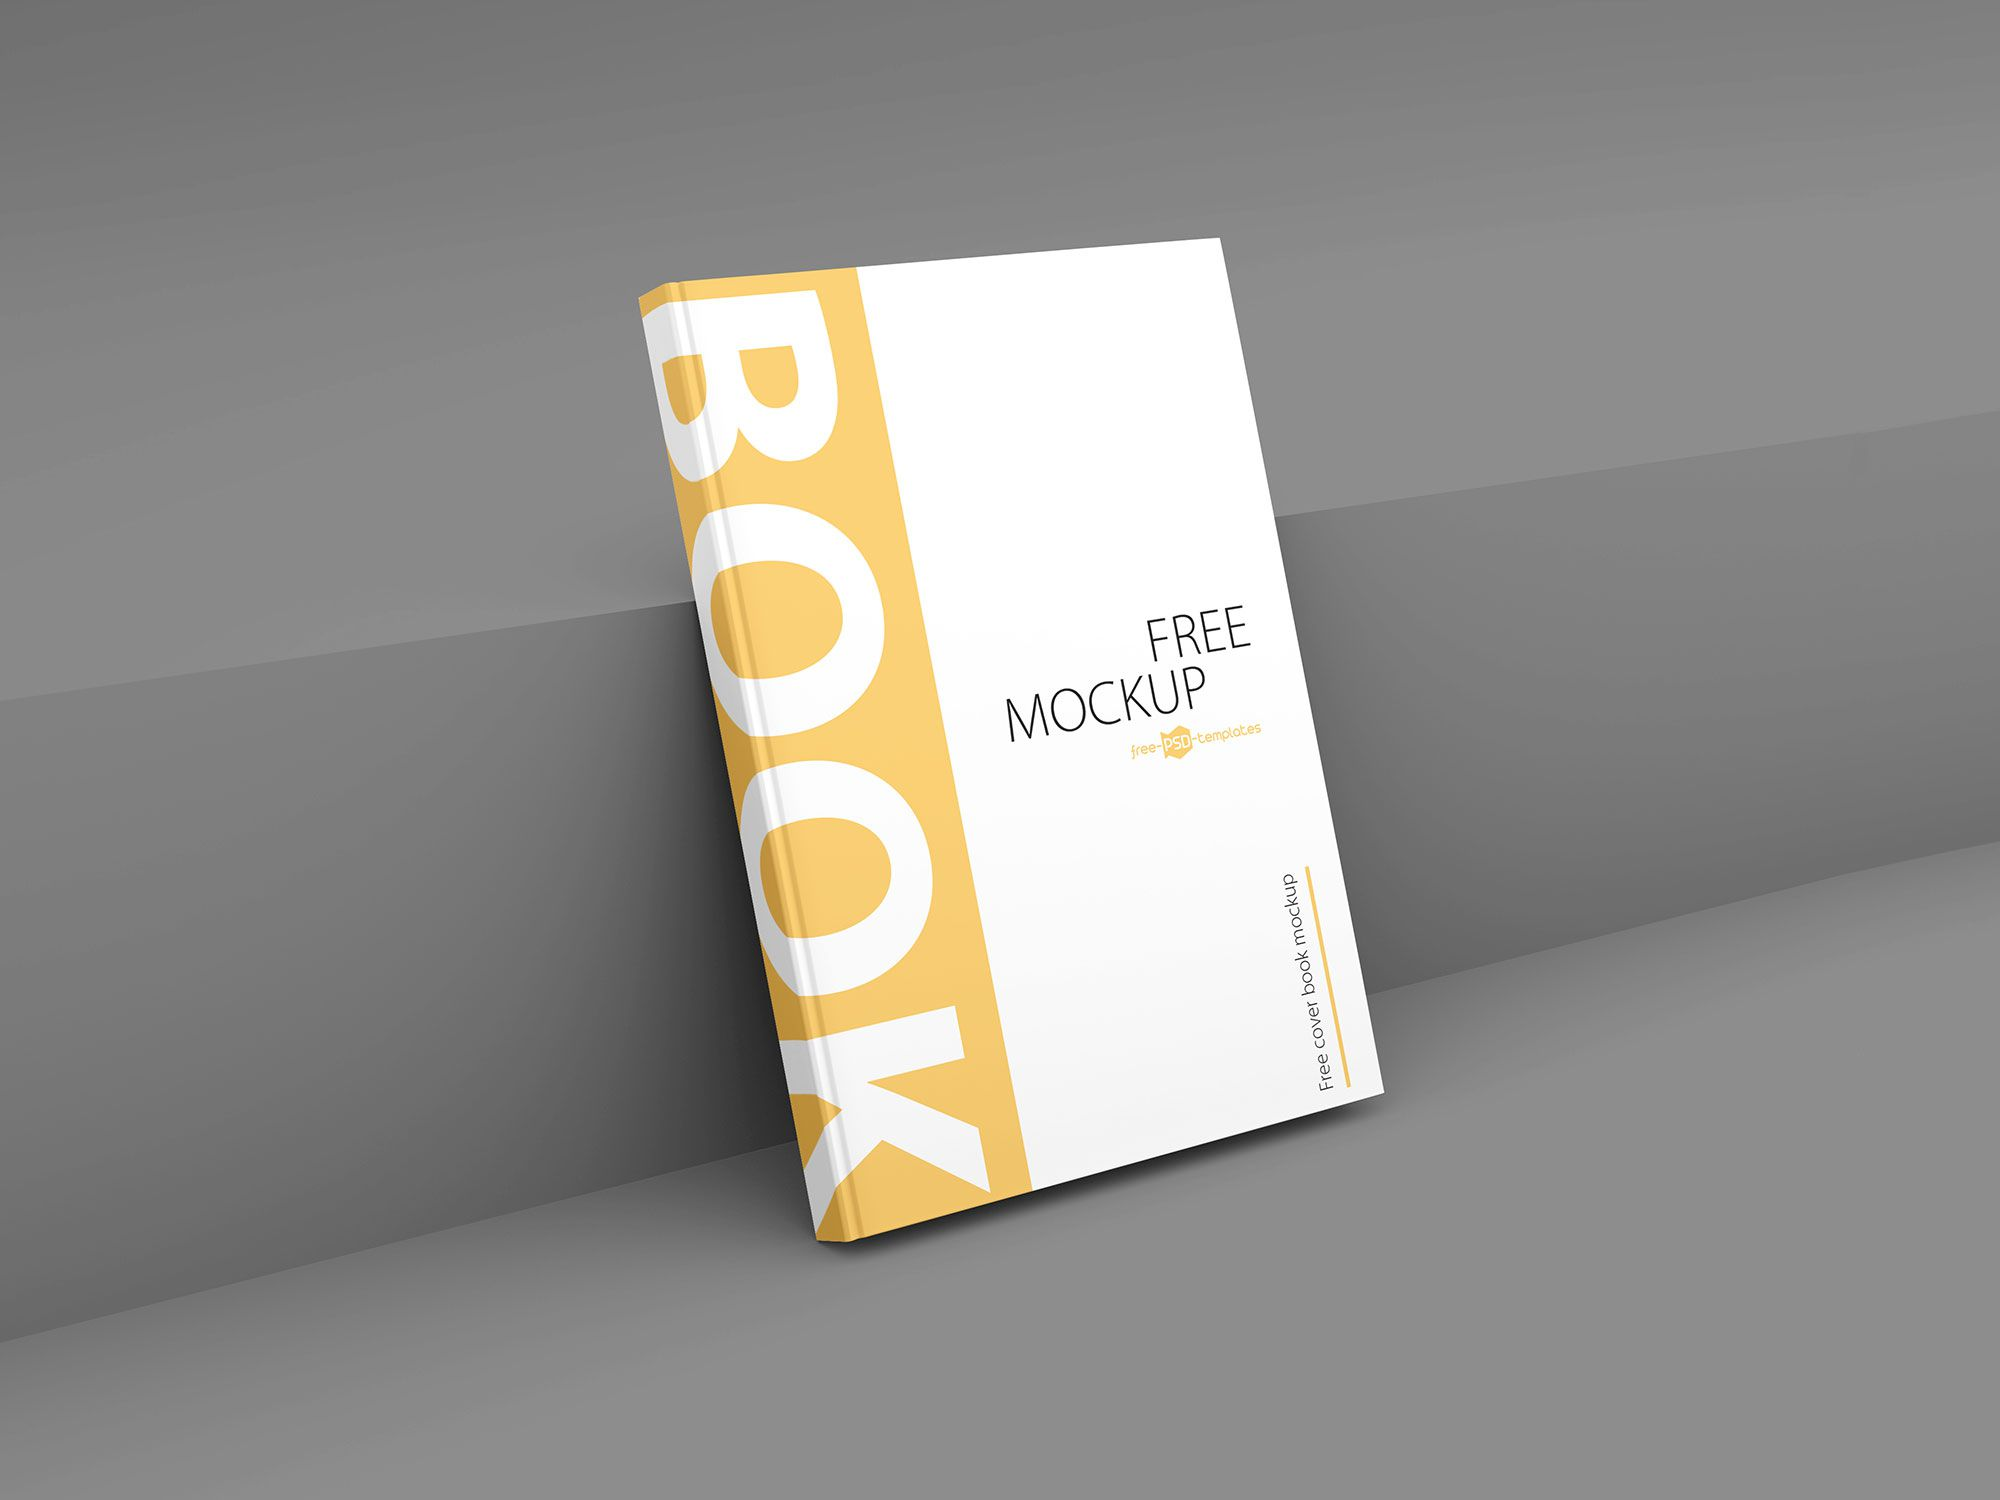 005 Top Free Download Book Cover Design Template Psd High Resolution Full